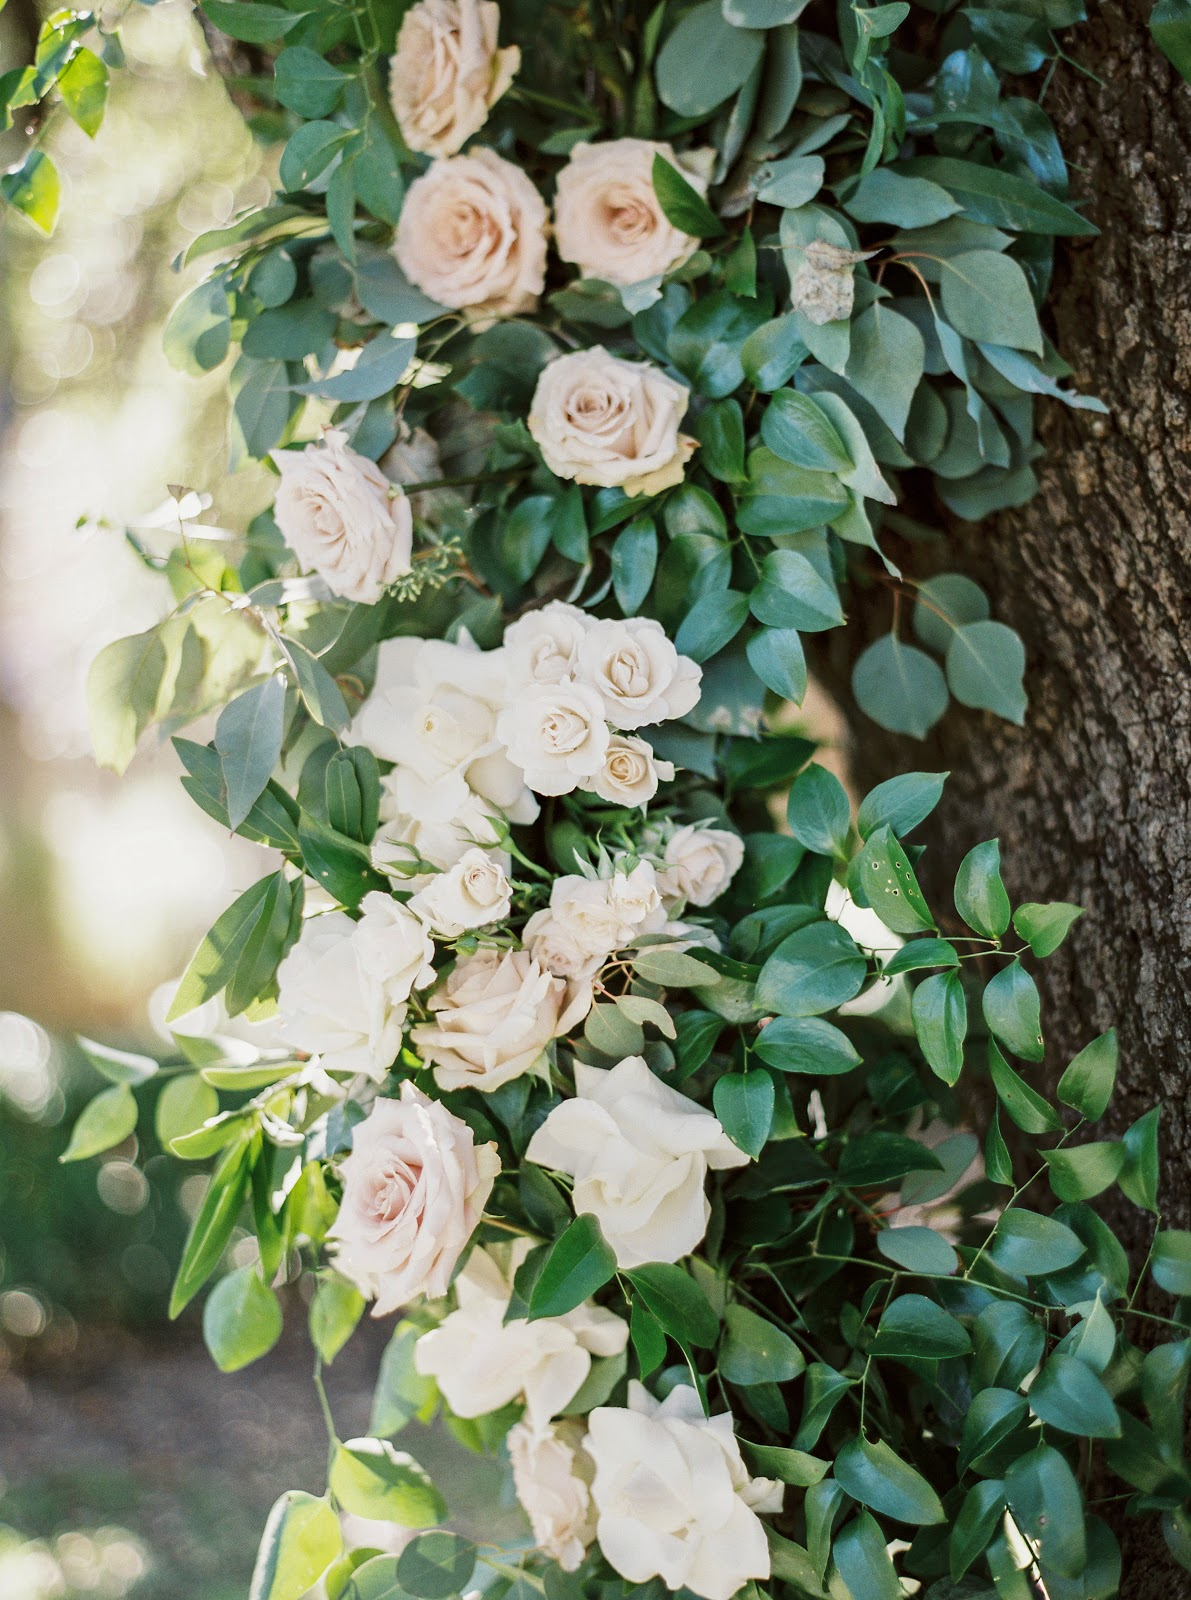 Rose Da Giardino Rampicanti wedding inspiration & rose 'madame alfred carriere'. | cool